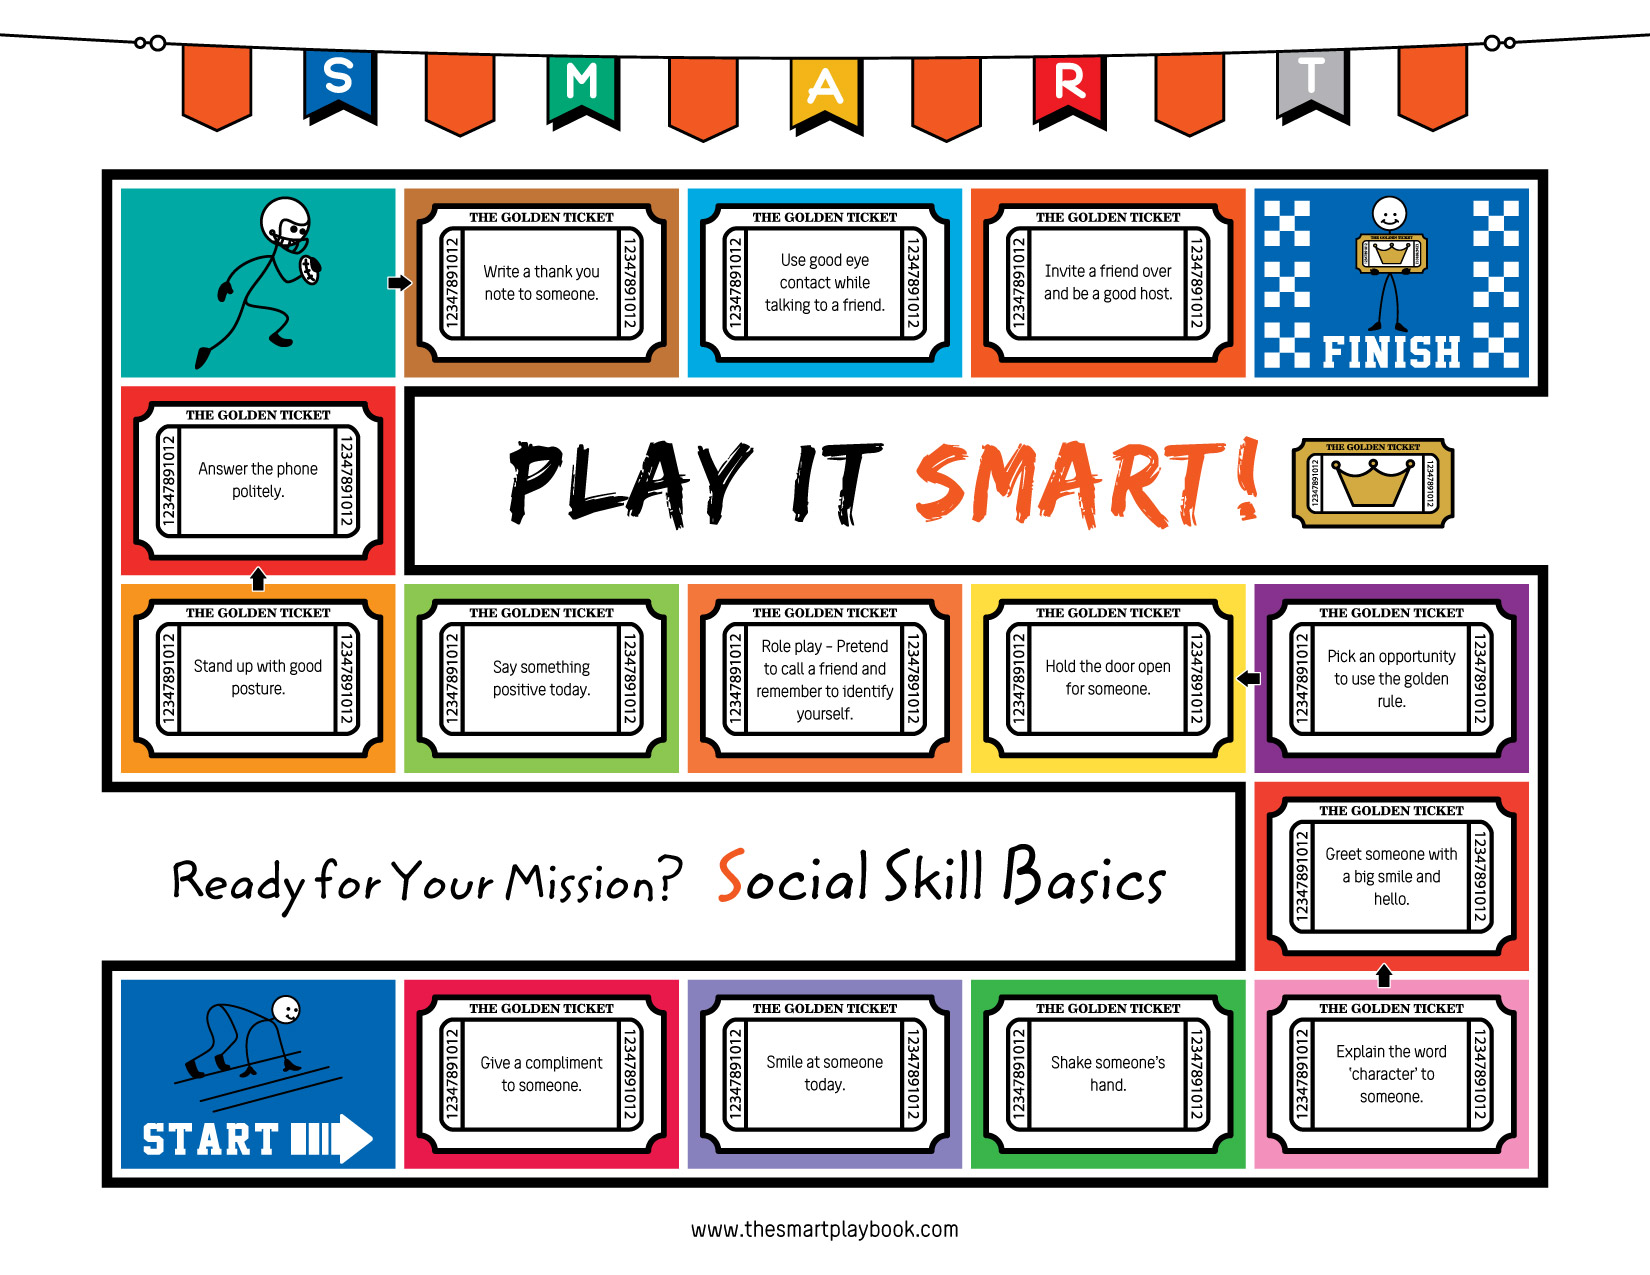 10 Social Skills Unplugged For Your Digitally Focused